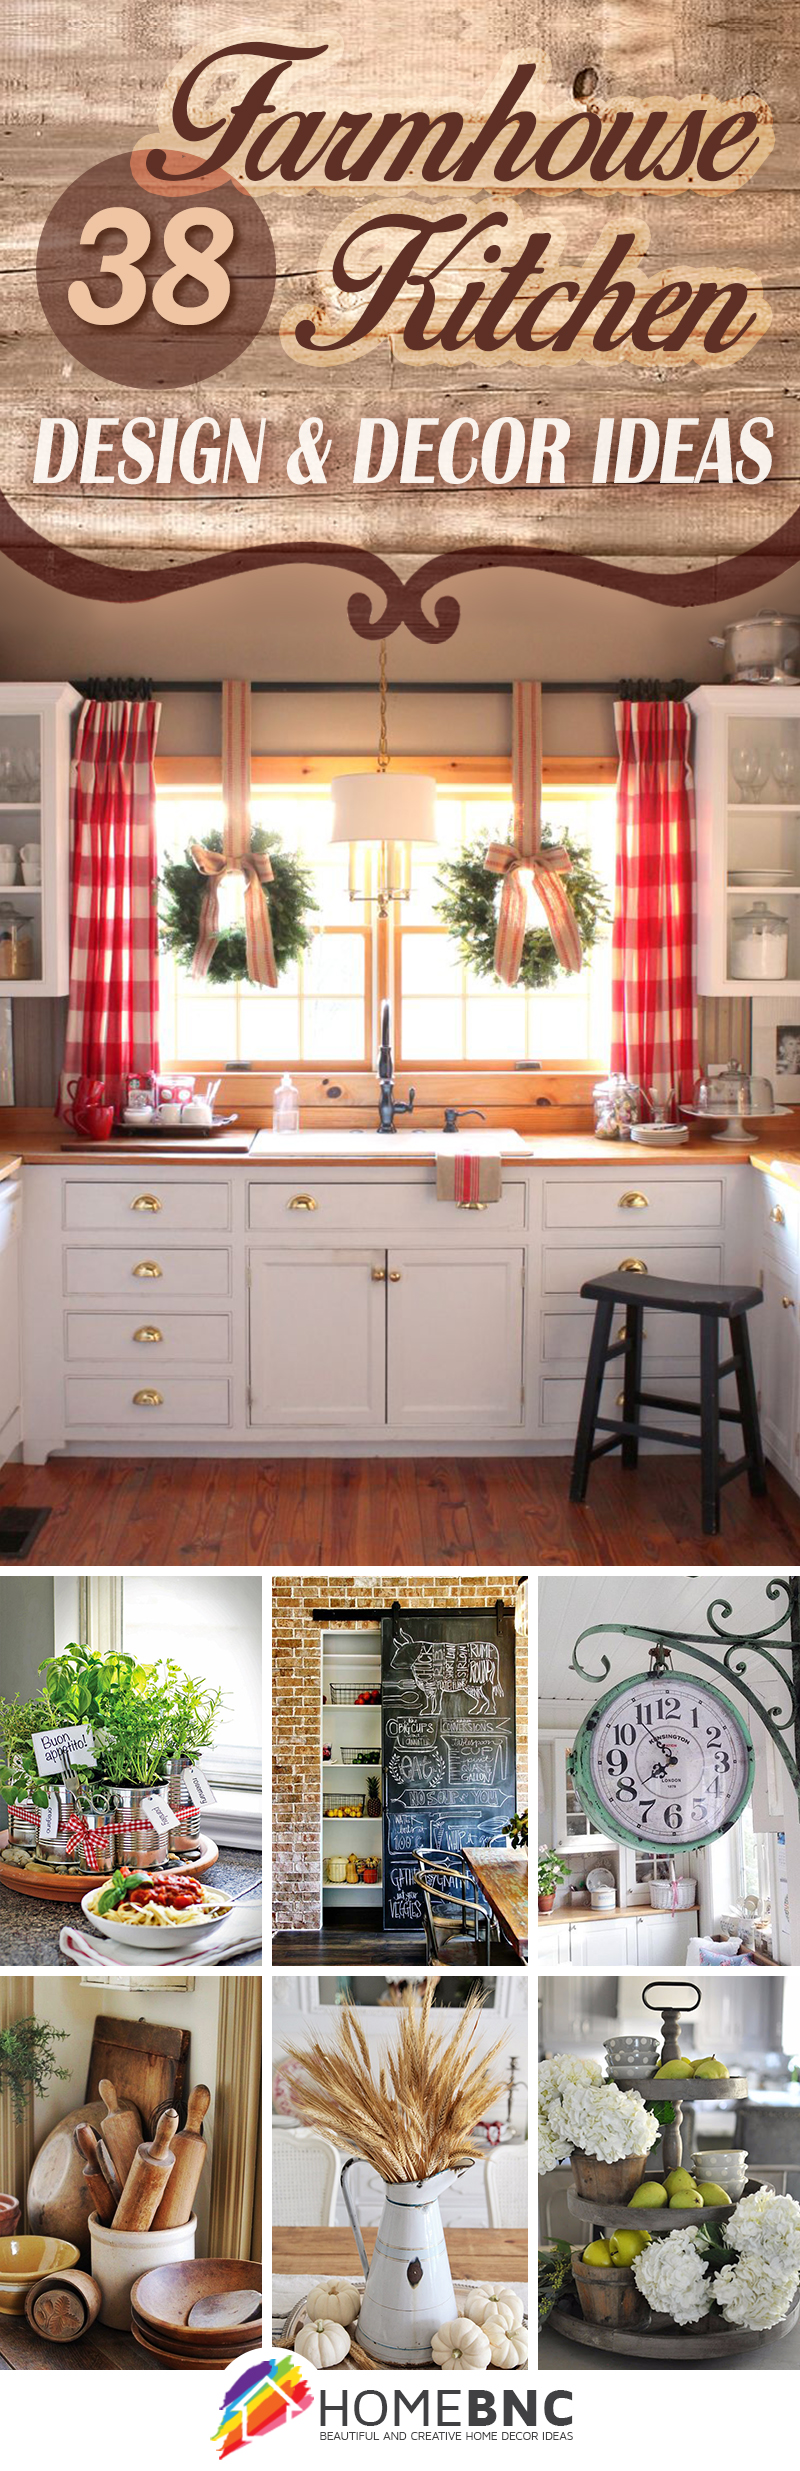 Farmhouse kitchen remodel designs farmhouse kitchen for Kitchen decoration designs